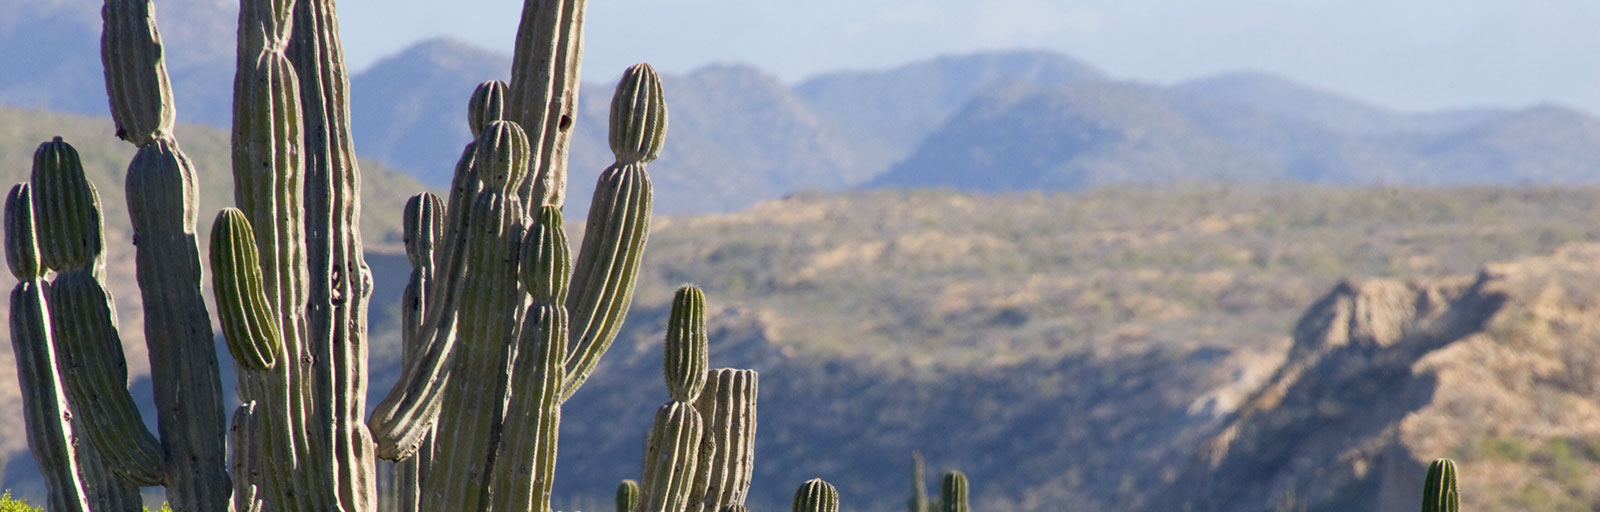 Yoga Retreat Scenics: Cactus and Mountains in the Baja Desert